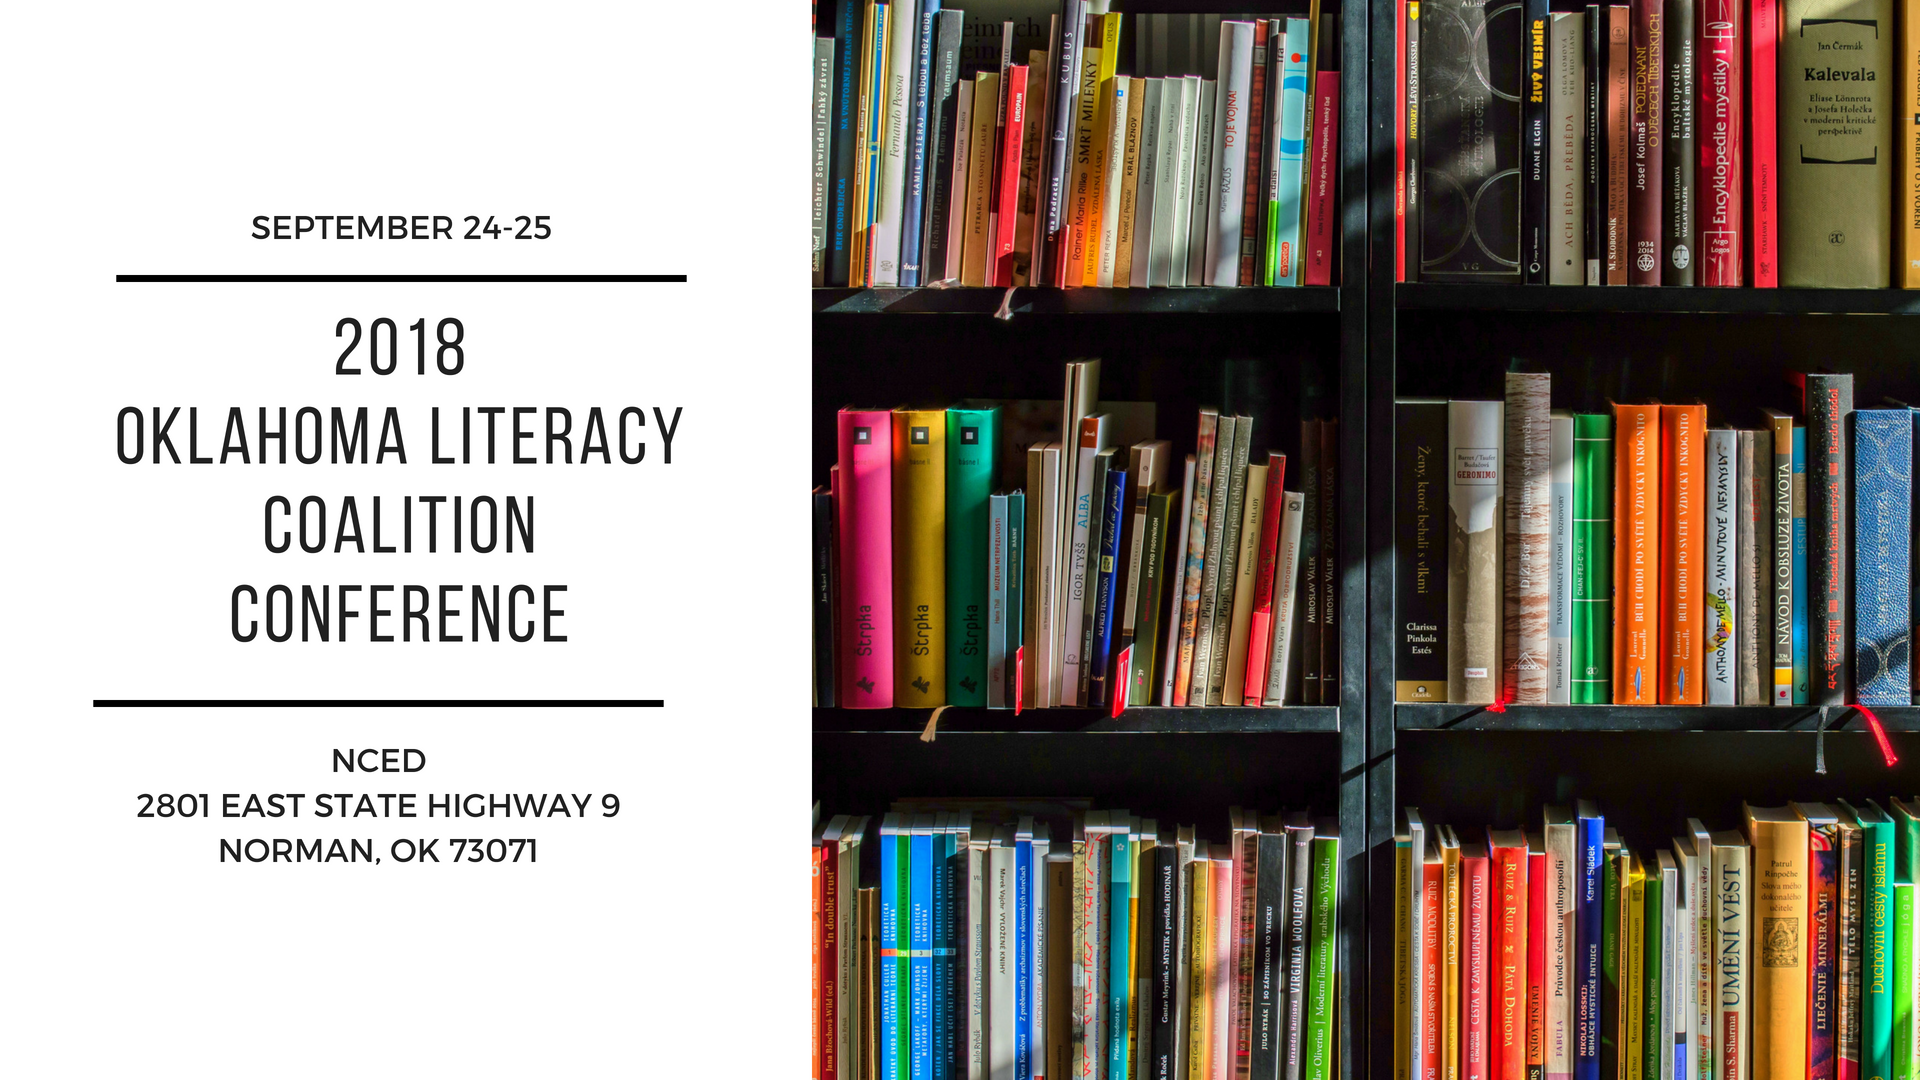 2018 Oklahoma Literacy Coalition Conference.